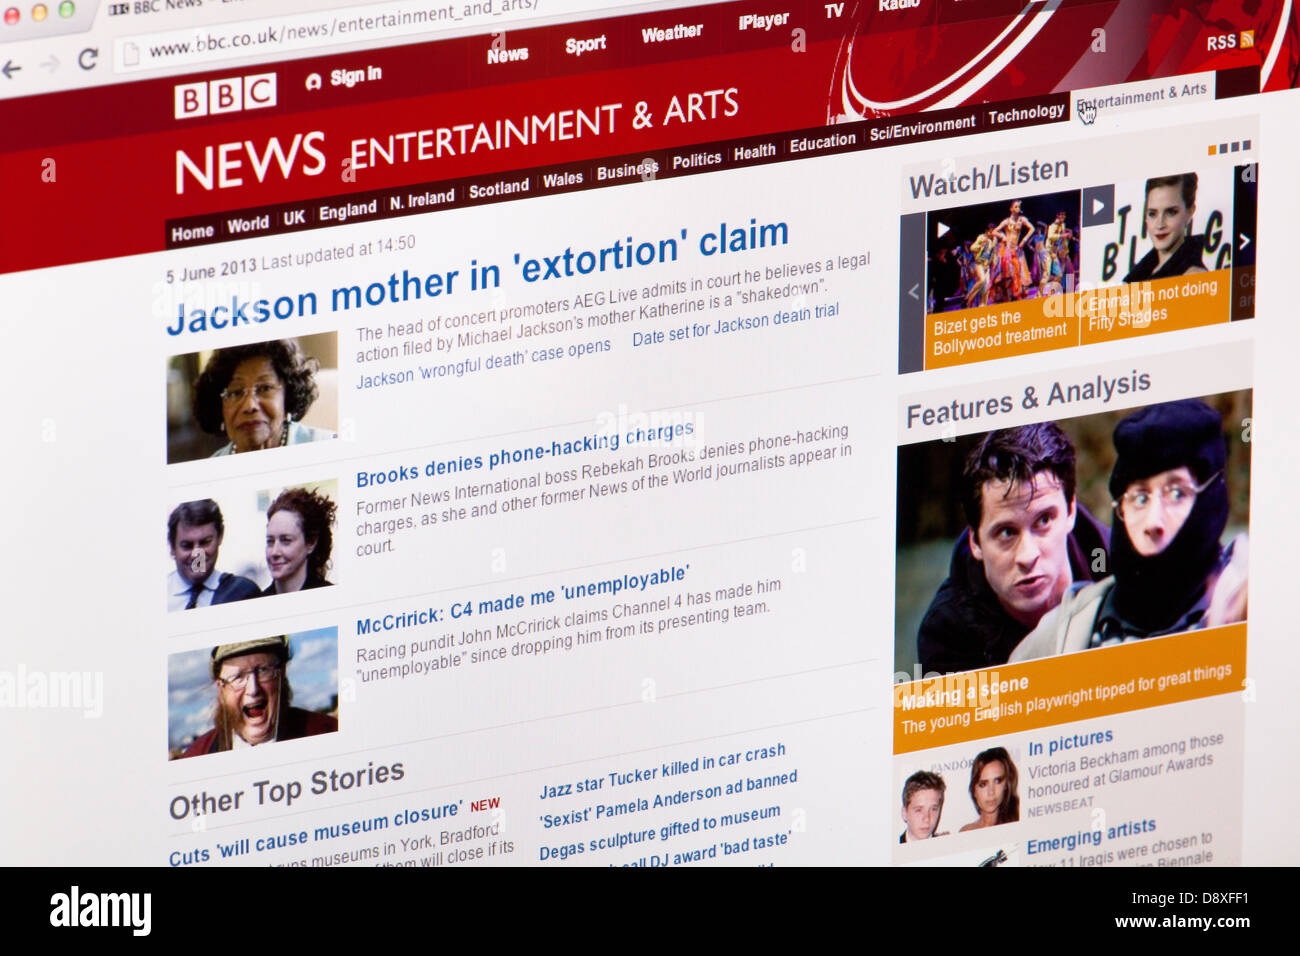 BBC News Entertainment and Arts Home Page Website or web page on a laptop screen or computer monitor - Stock Image